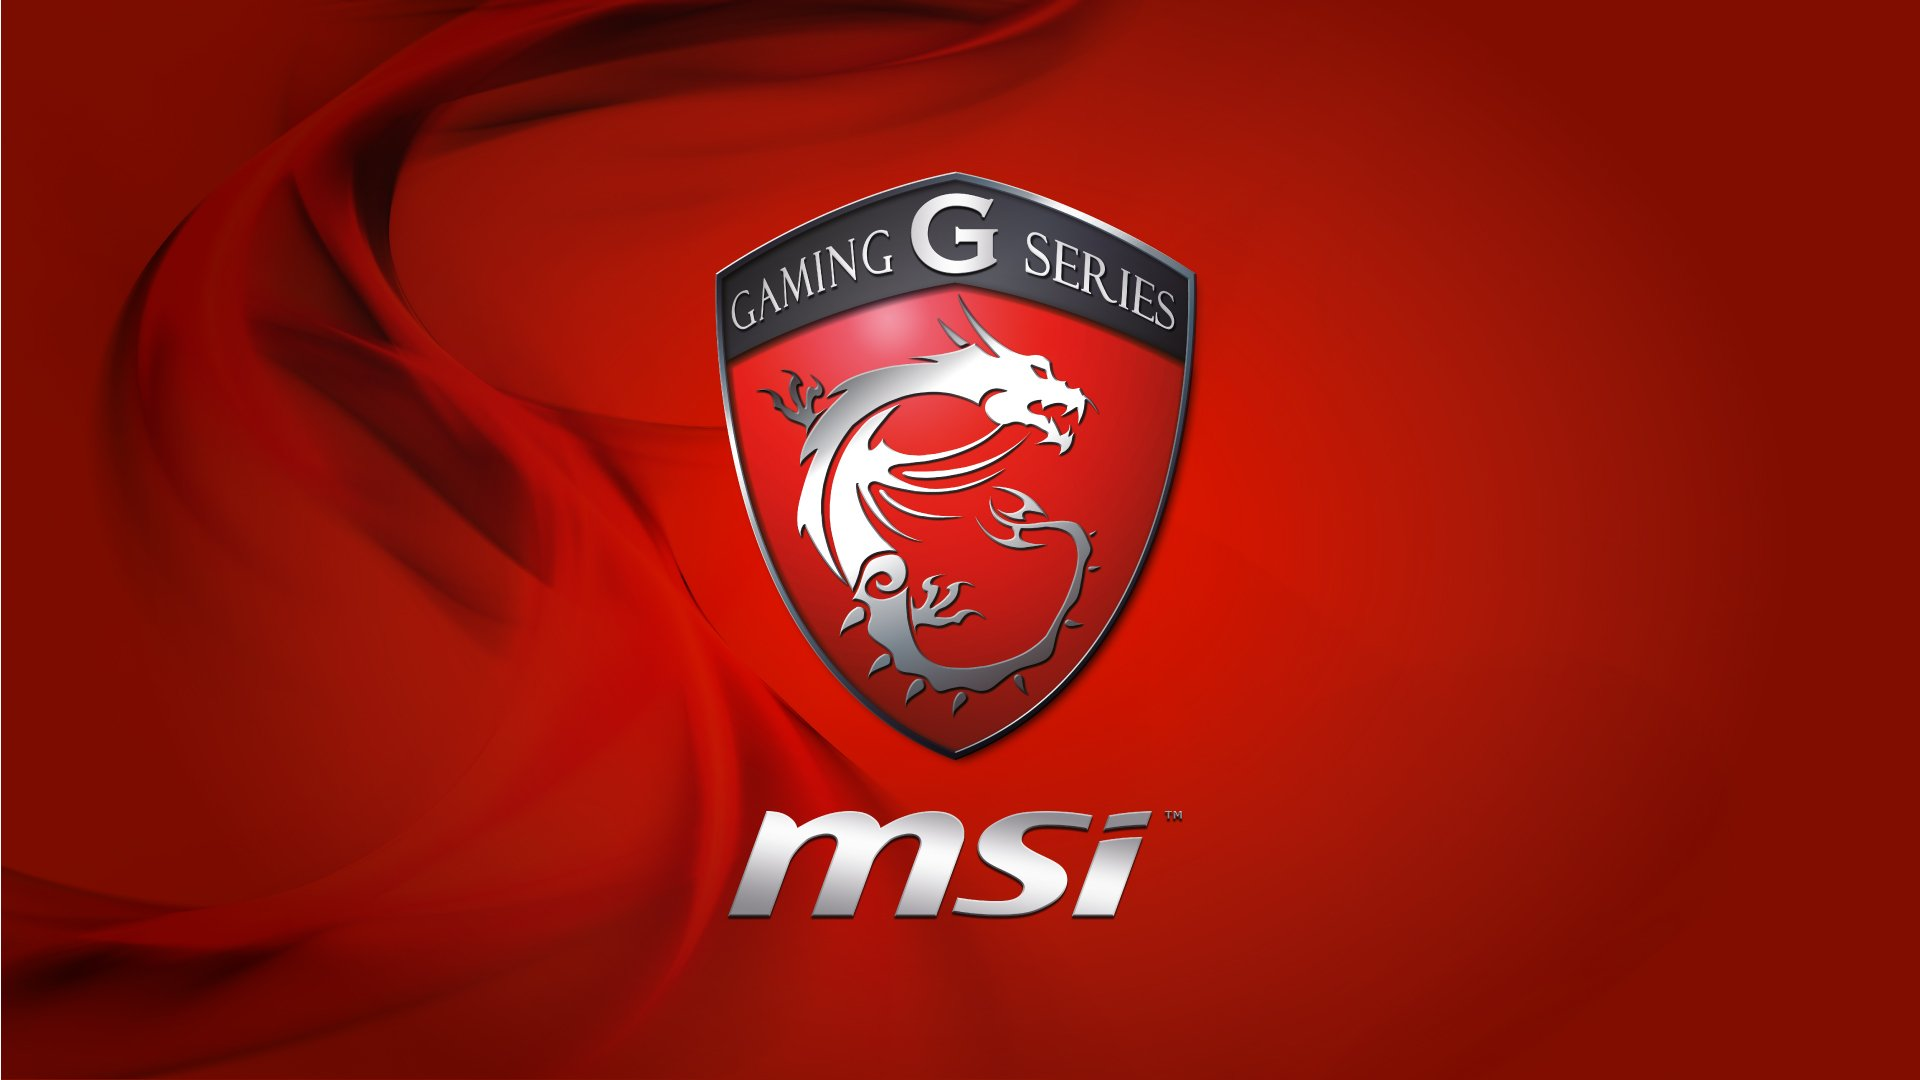 Msi full hd wallpaper and background image 1920x1080 id756292 technology msi computer wallpaper voltagebd Images